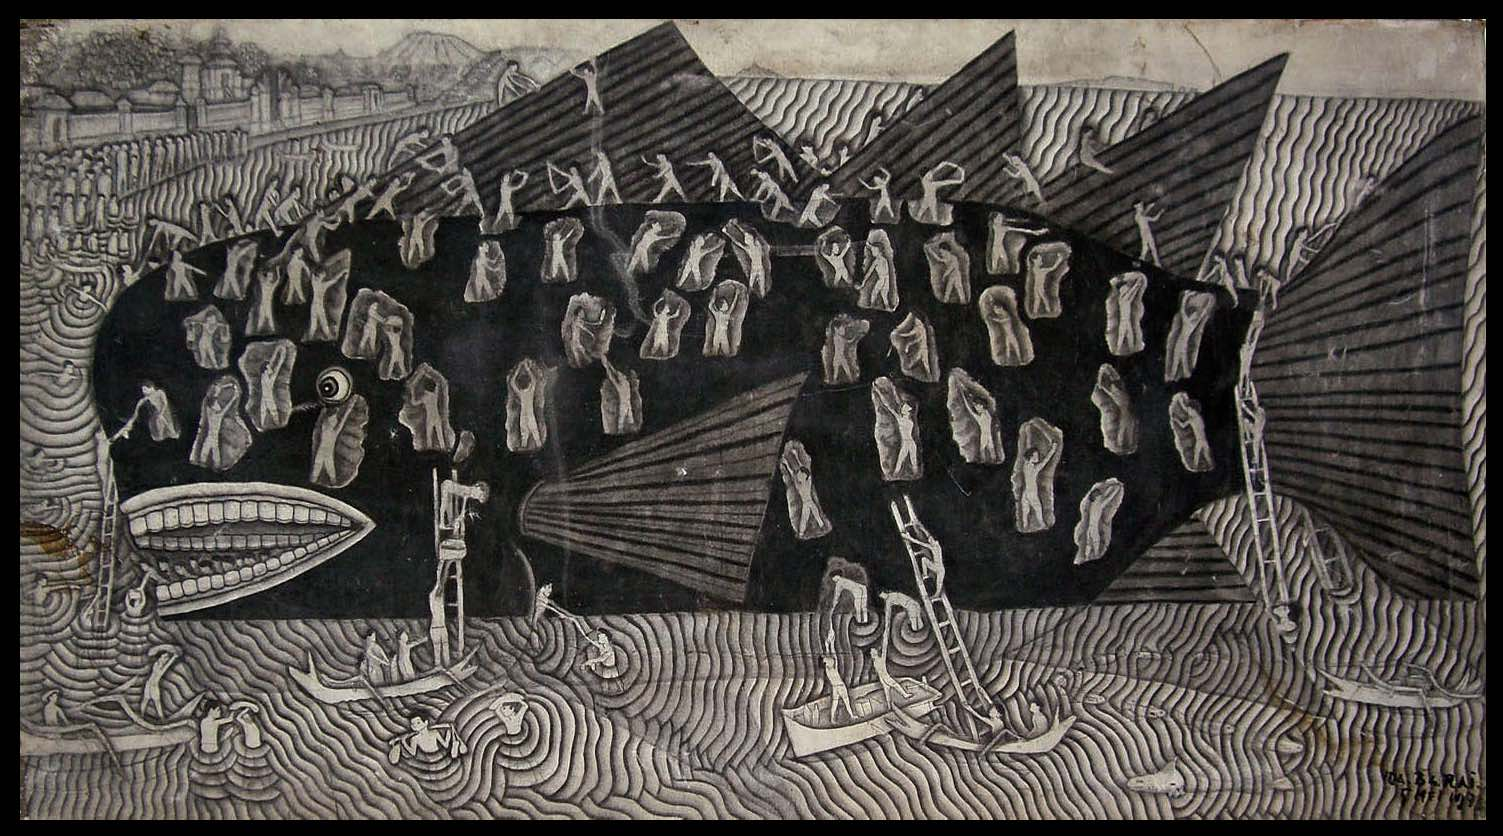 """On Valente's Venus, divers collect callowmilk from callowhales which resemble something like a cross between kelp and whales with big bladders of """"milk."""" Above Balinese are harvesting a beached whale.  """"   Beached Whale, Ida Bagus Nyoman Rai - Sanur, Bali, Indonesia.""""  Ink wash on canvas. B y Swidagdo, circa 1970's."""